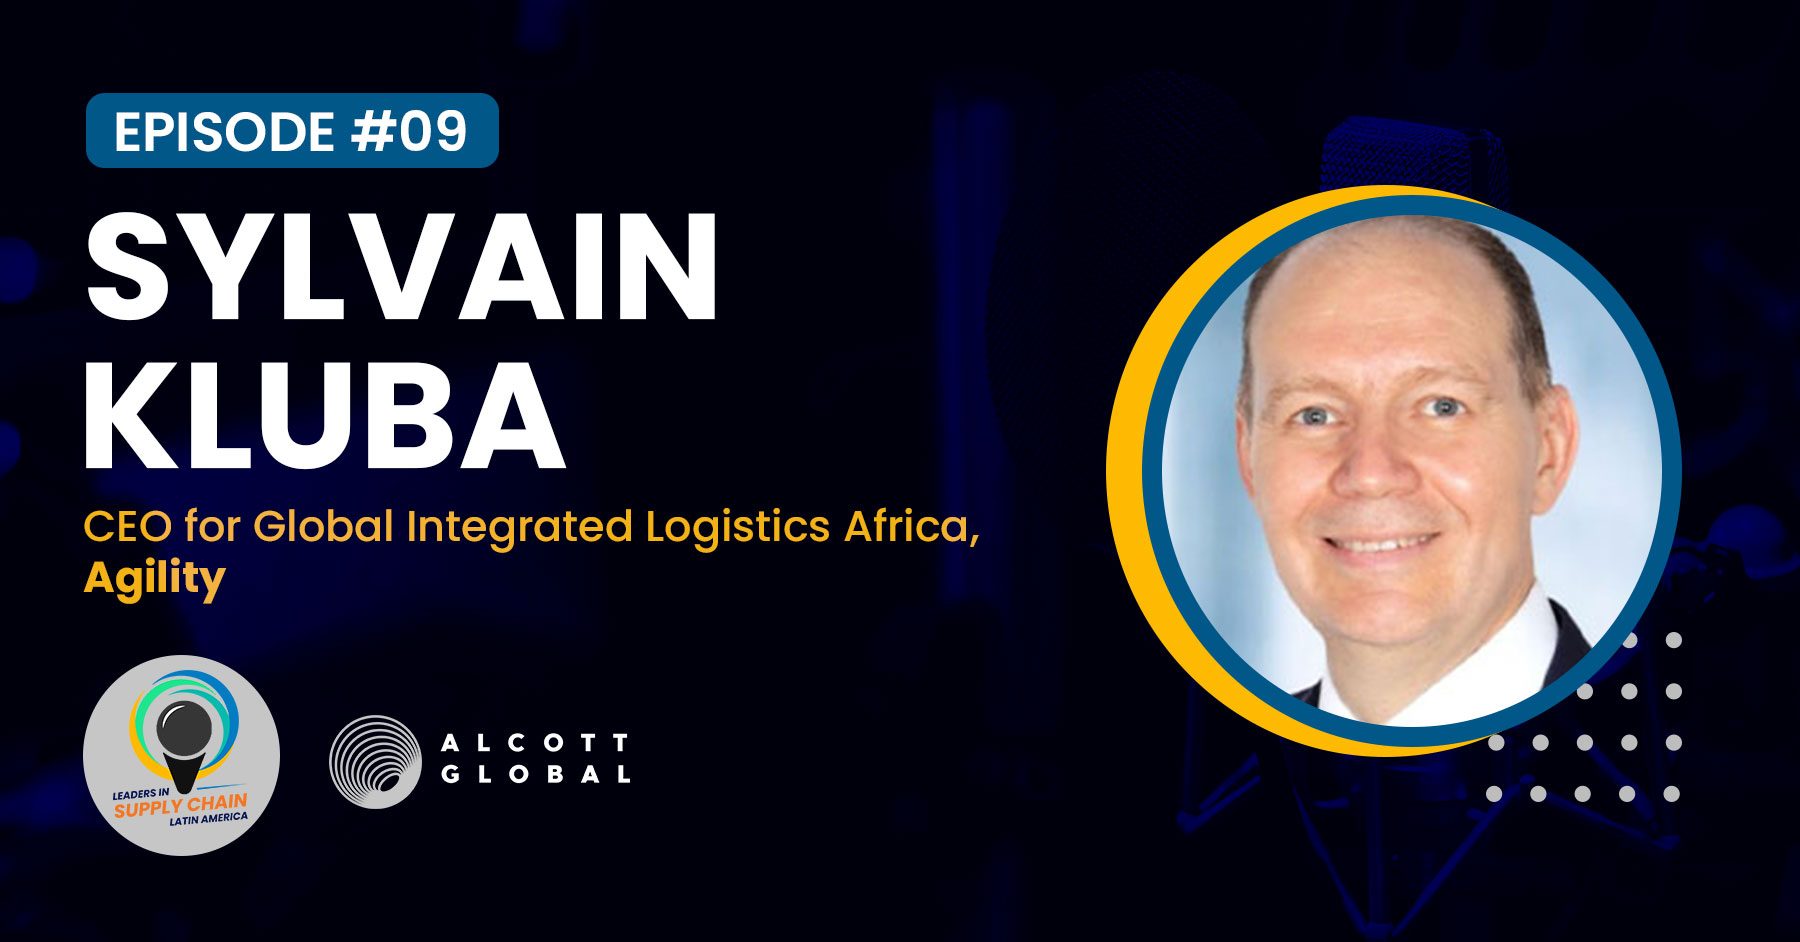 #09: Sylvain Kluba CEO for Global Integrated Logistics Africa of Agility Featured Image